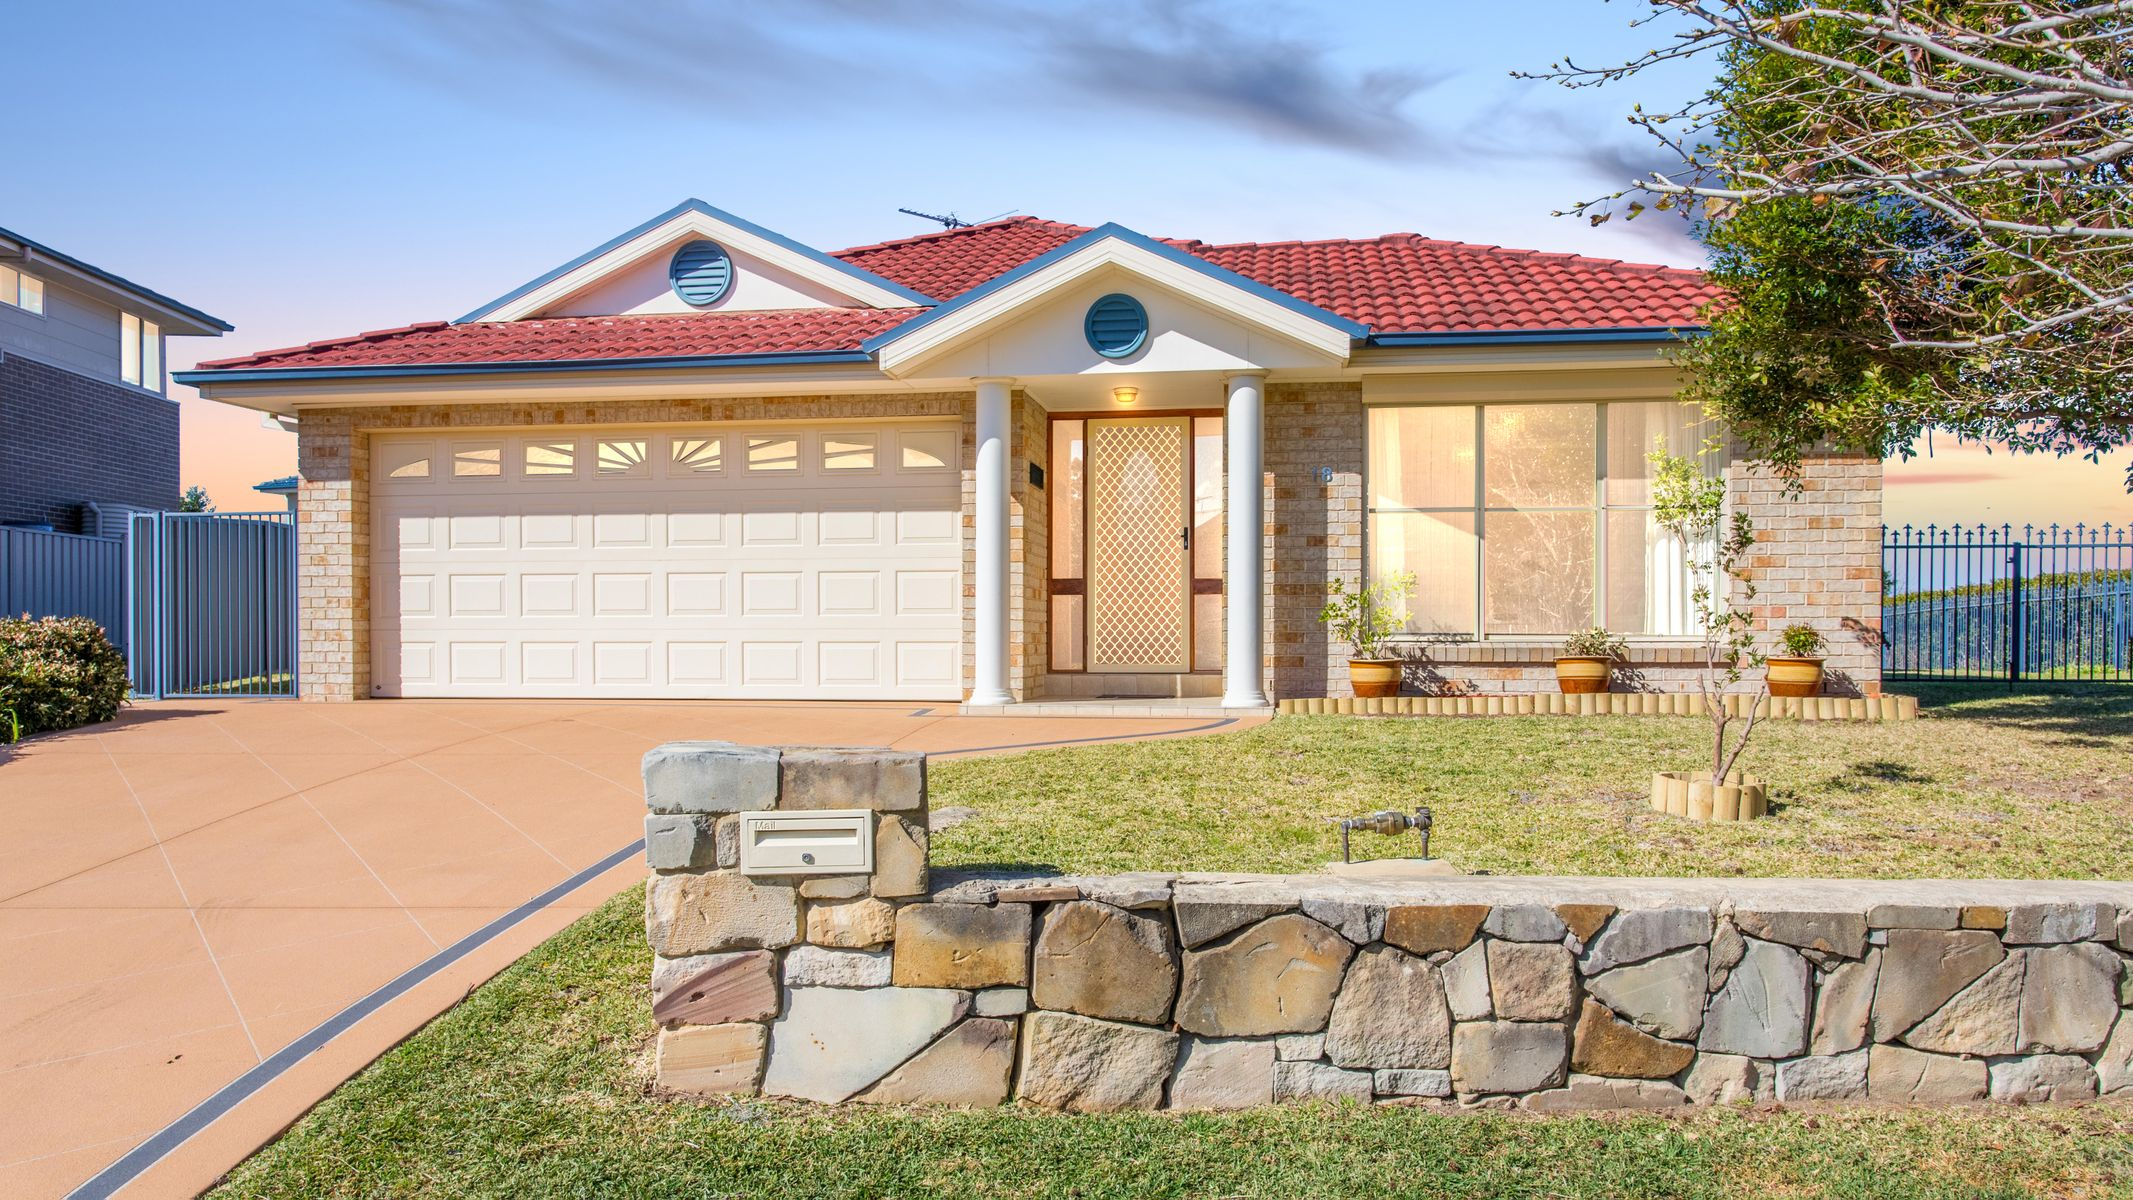 18 The Hill, Valentine NSW 2280, Australia , House for Sale